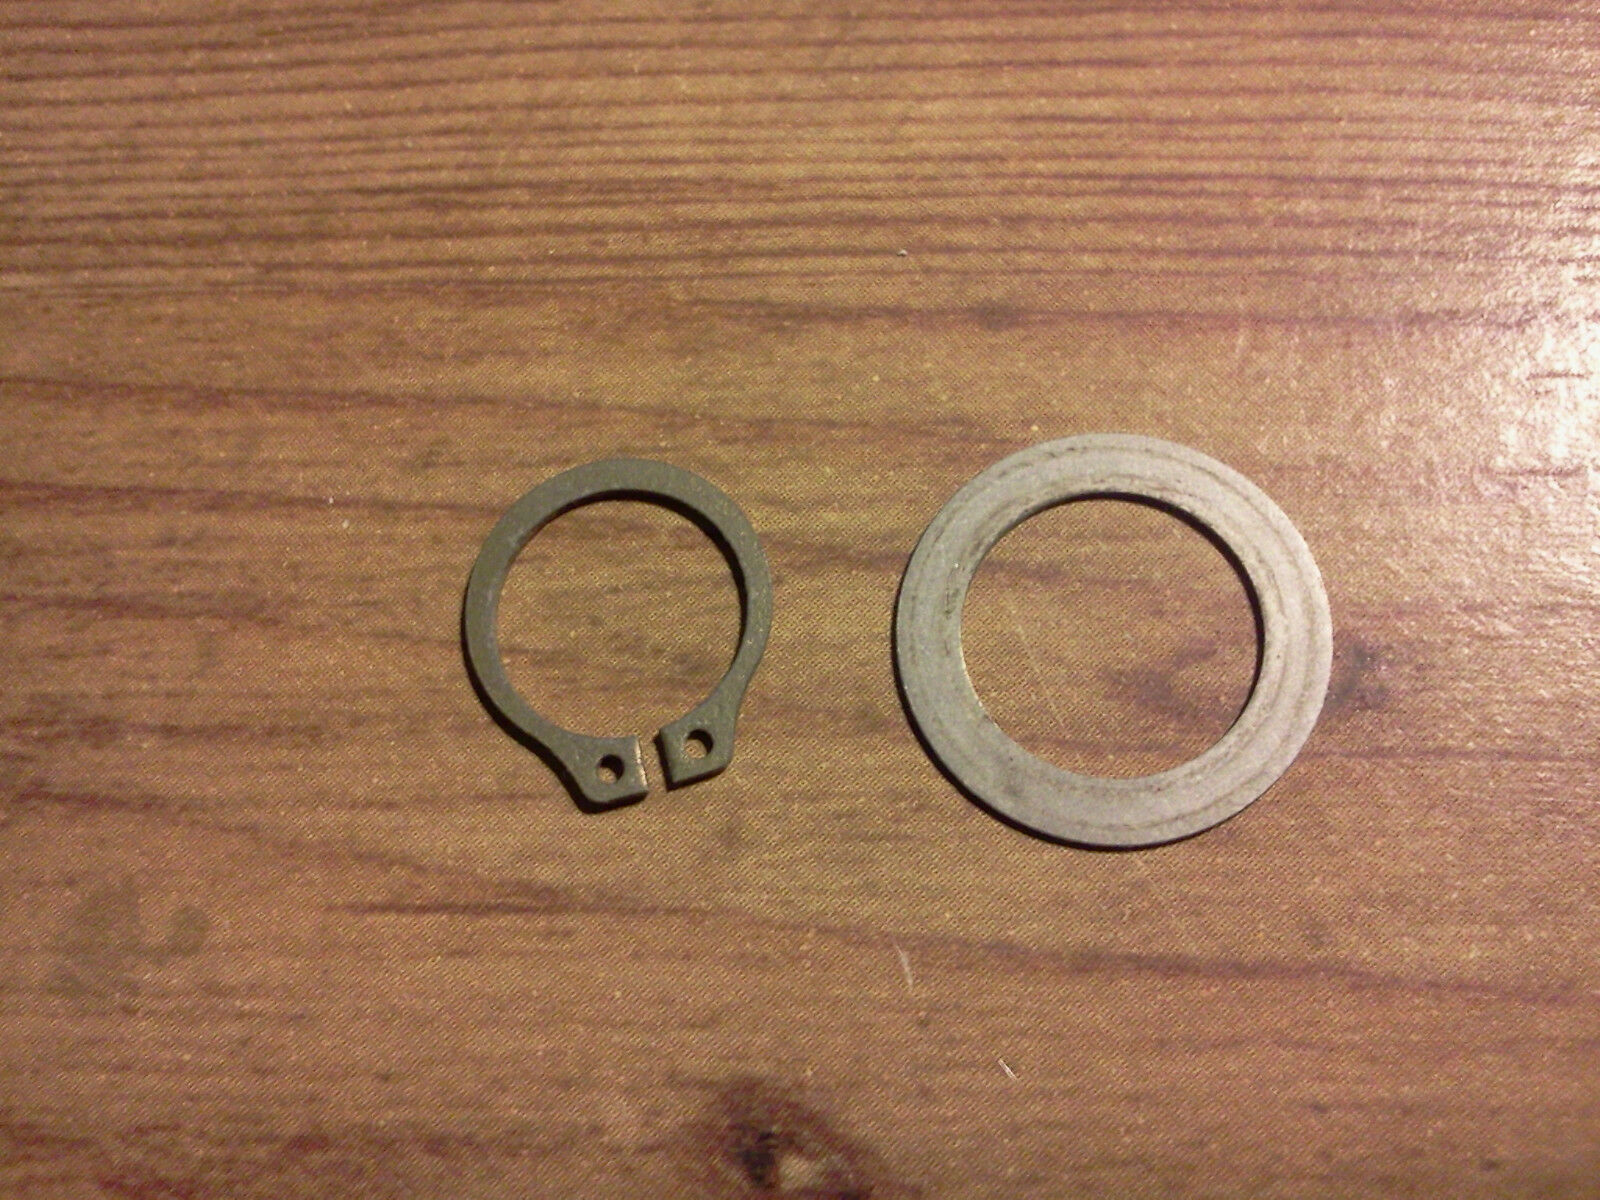 New//Used  Bendix magneto snap ring and washer for the distributor gear